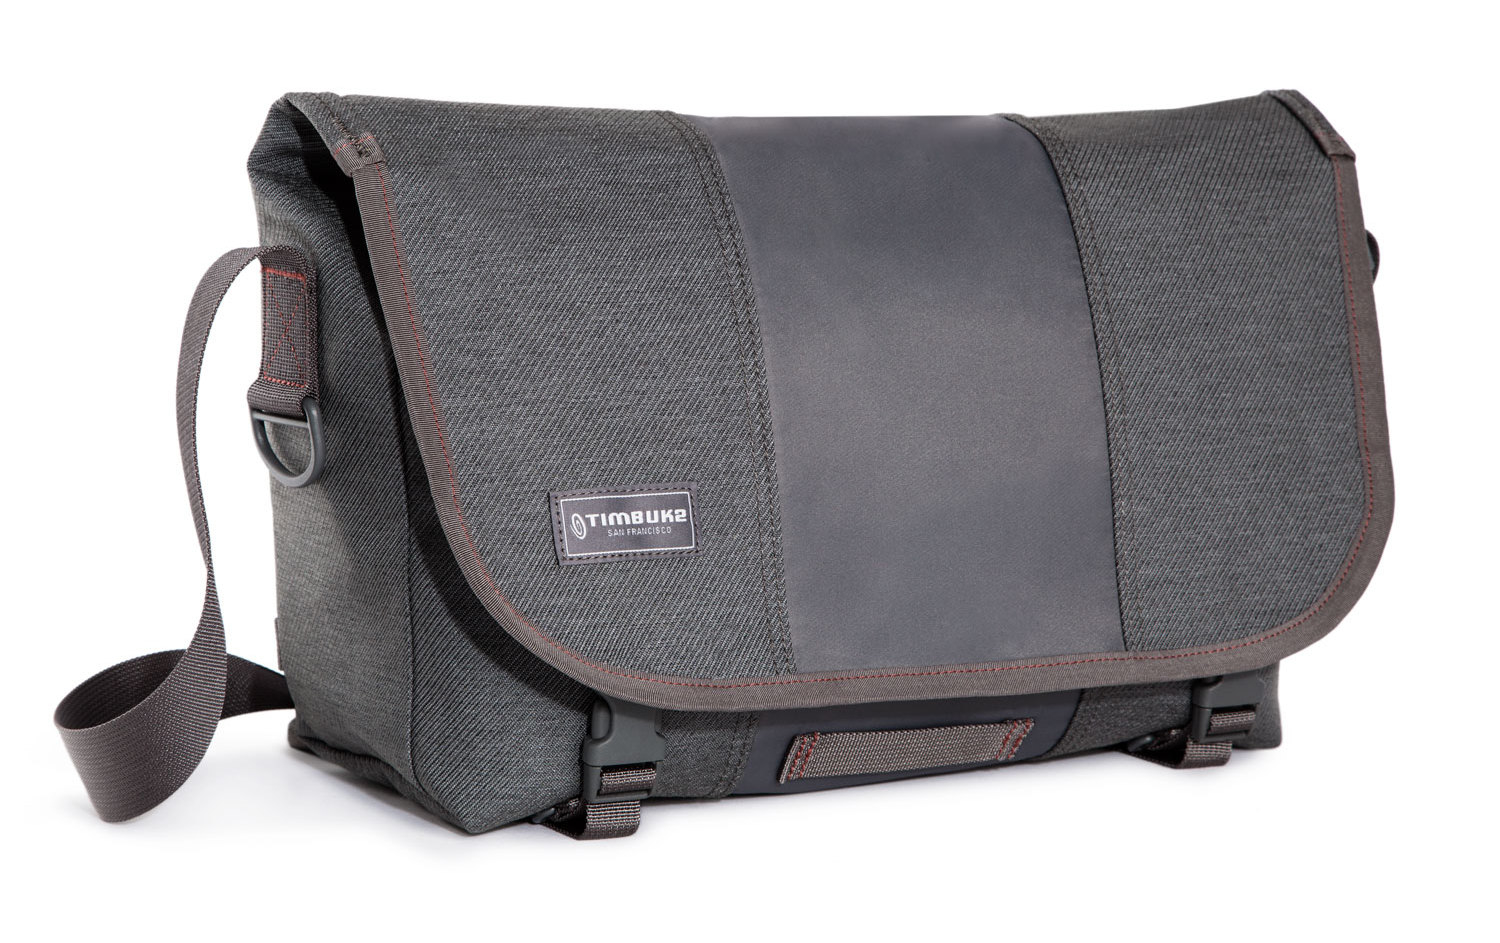 Timbuk2 classic messenger bag medium review